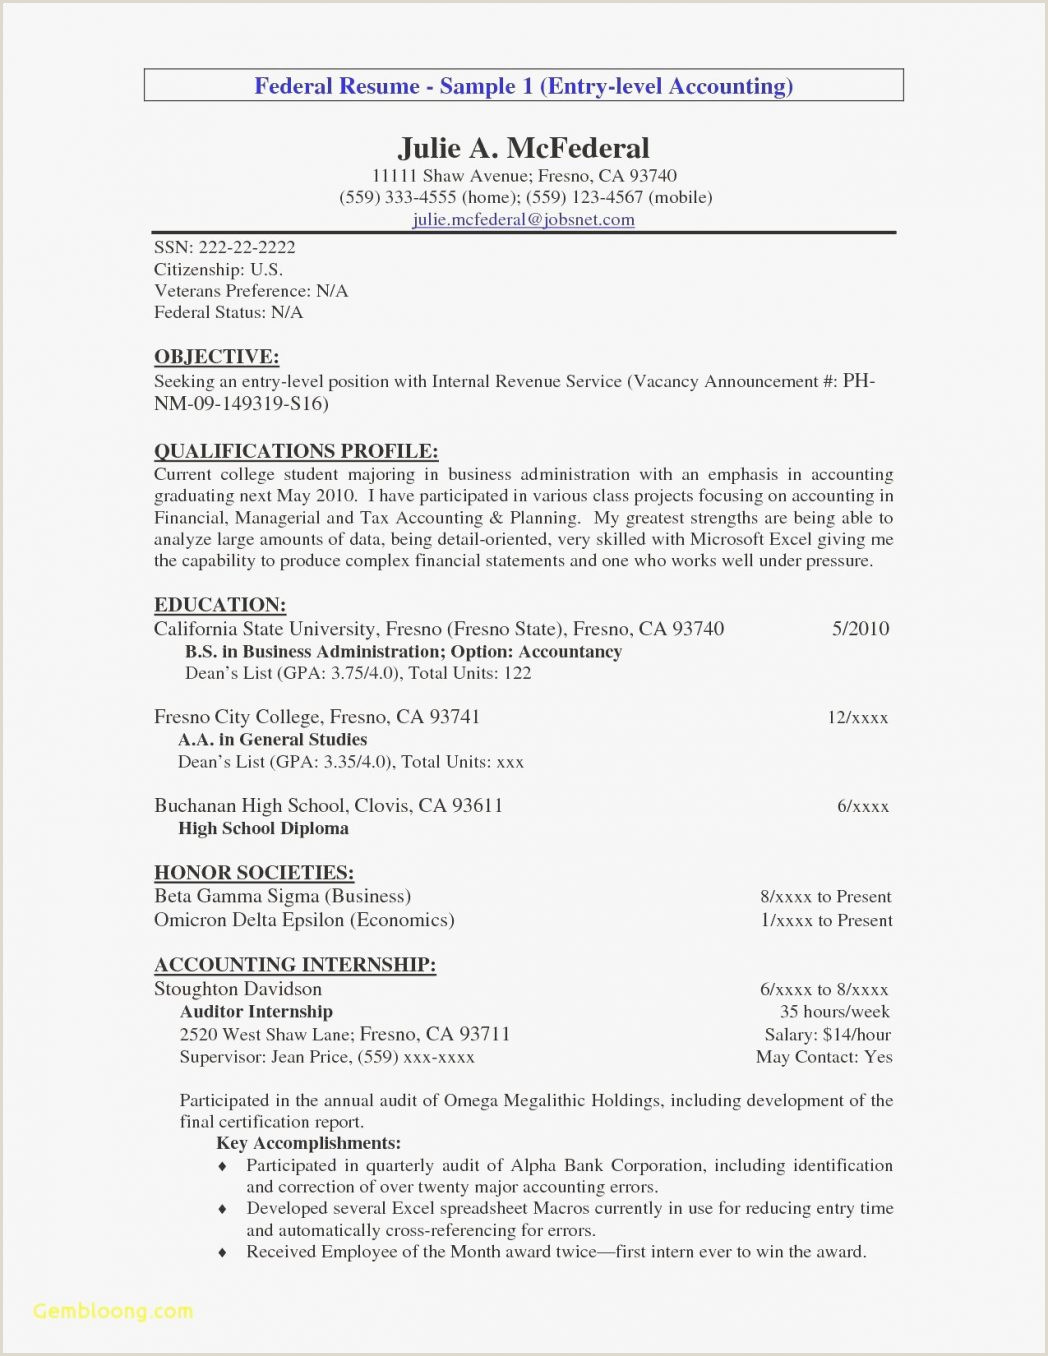 Resume Objective for software Engineer Cover Letter De Shaw Exclusive Entry Level Examples Elegant